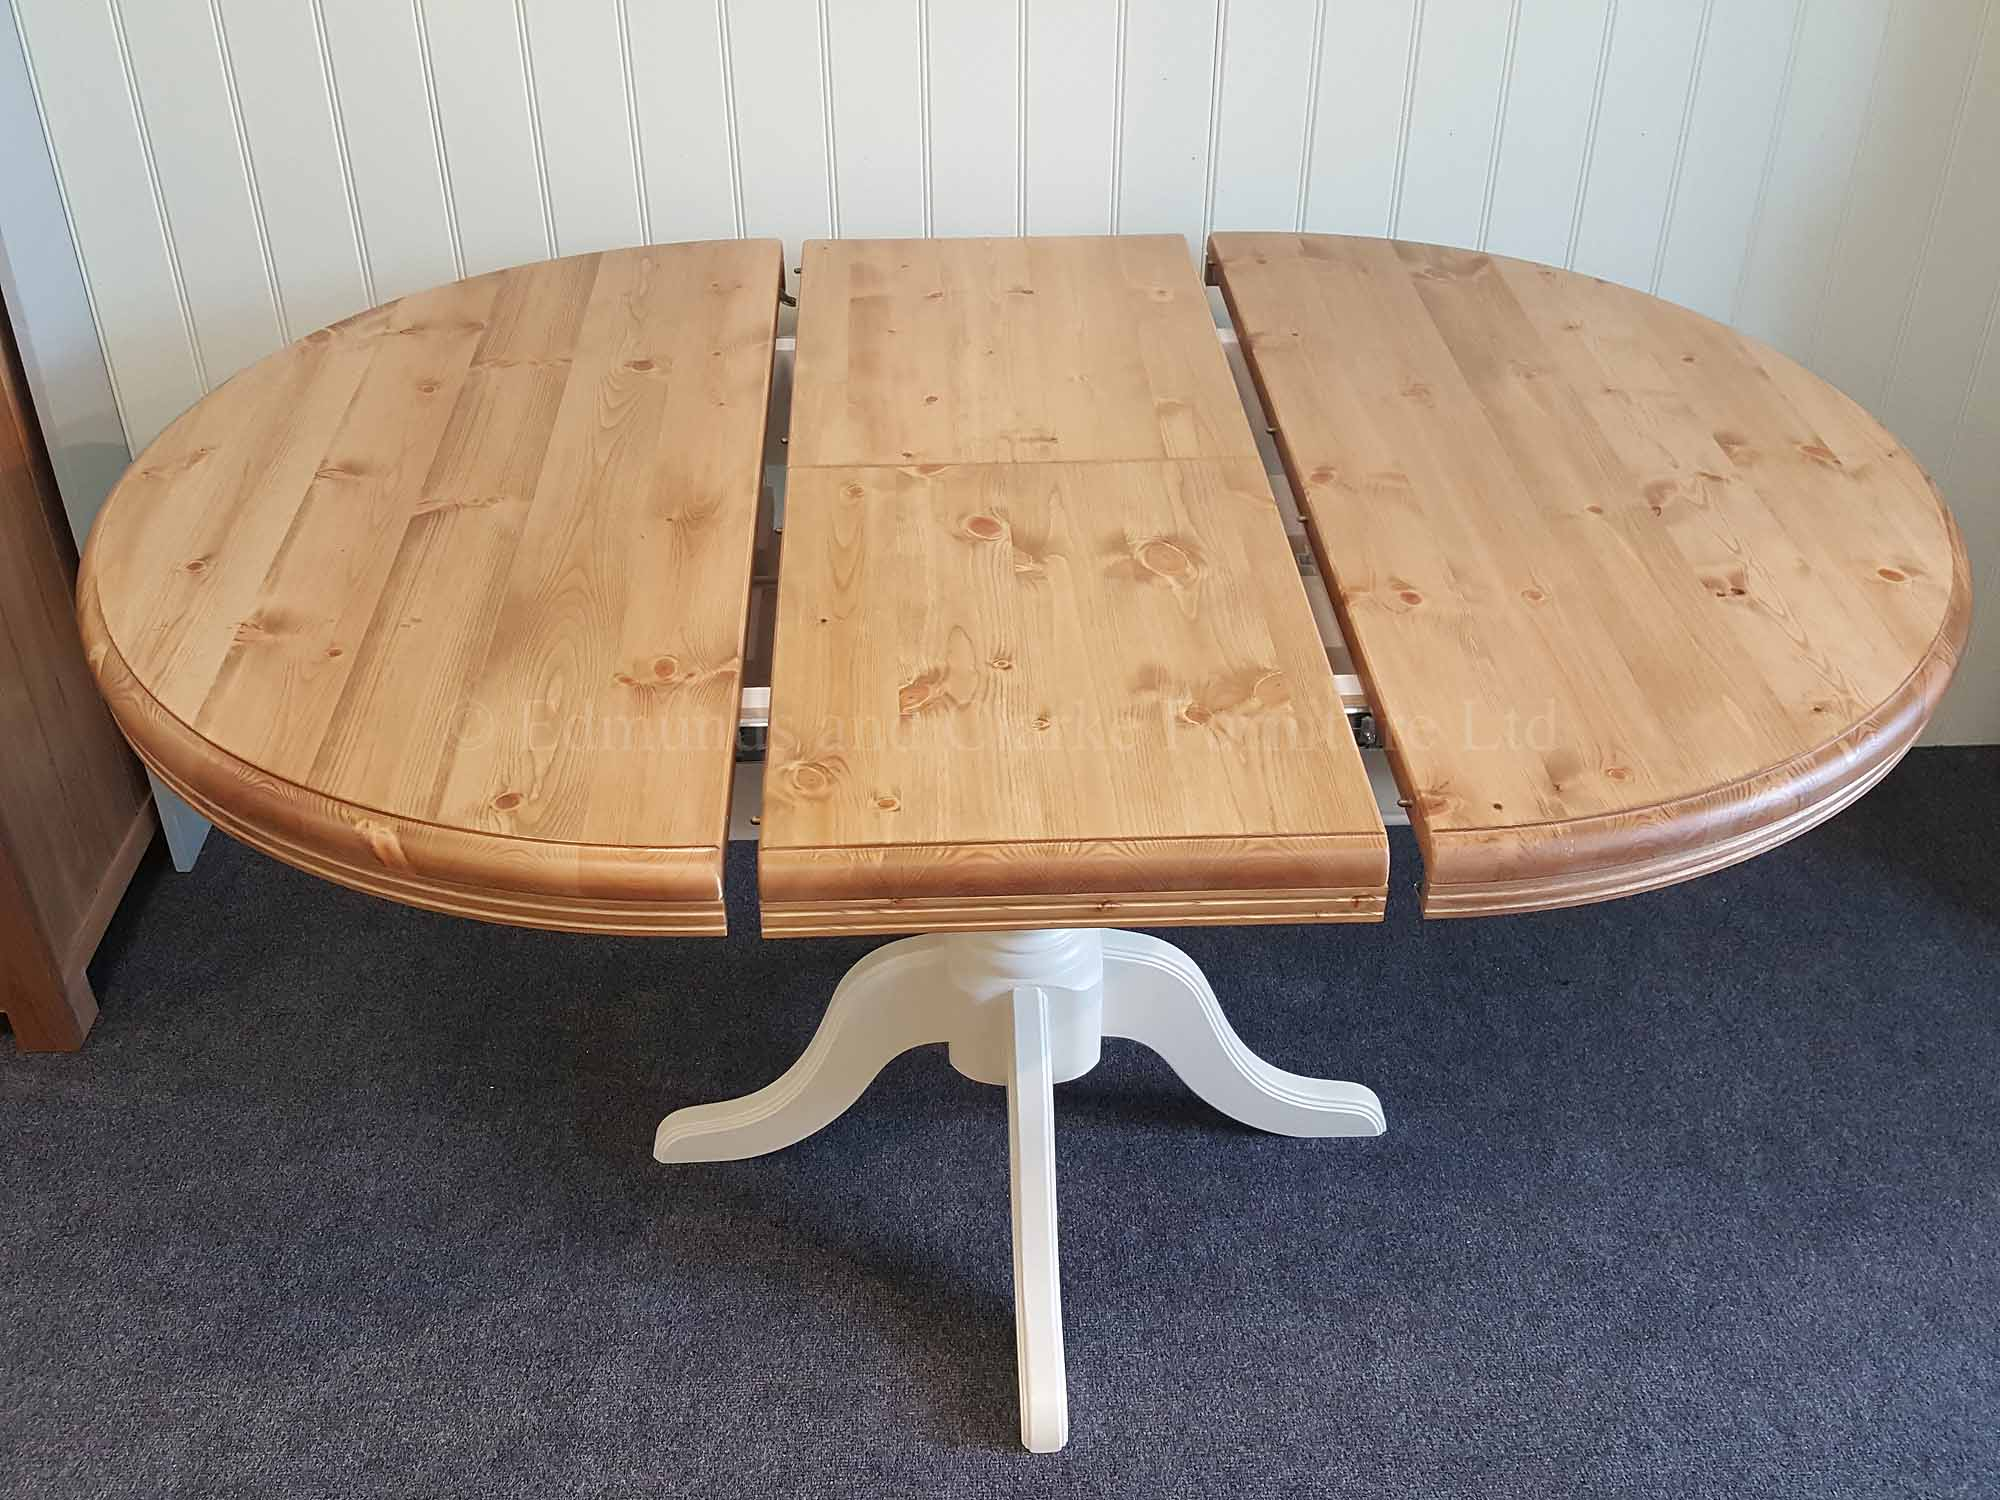 Round pine painted extending table extended with single leaf, oval shape